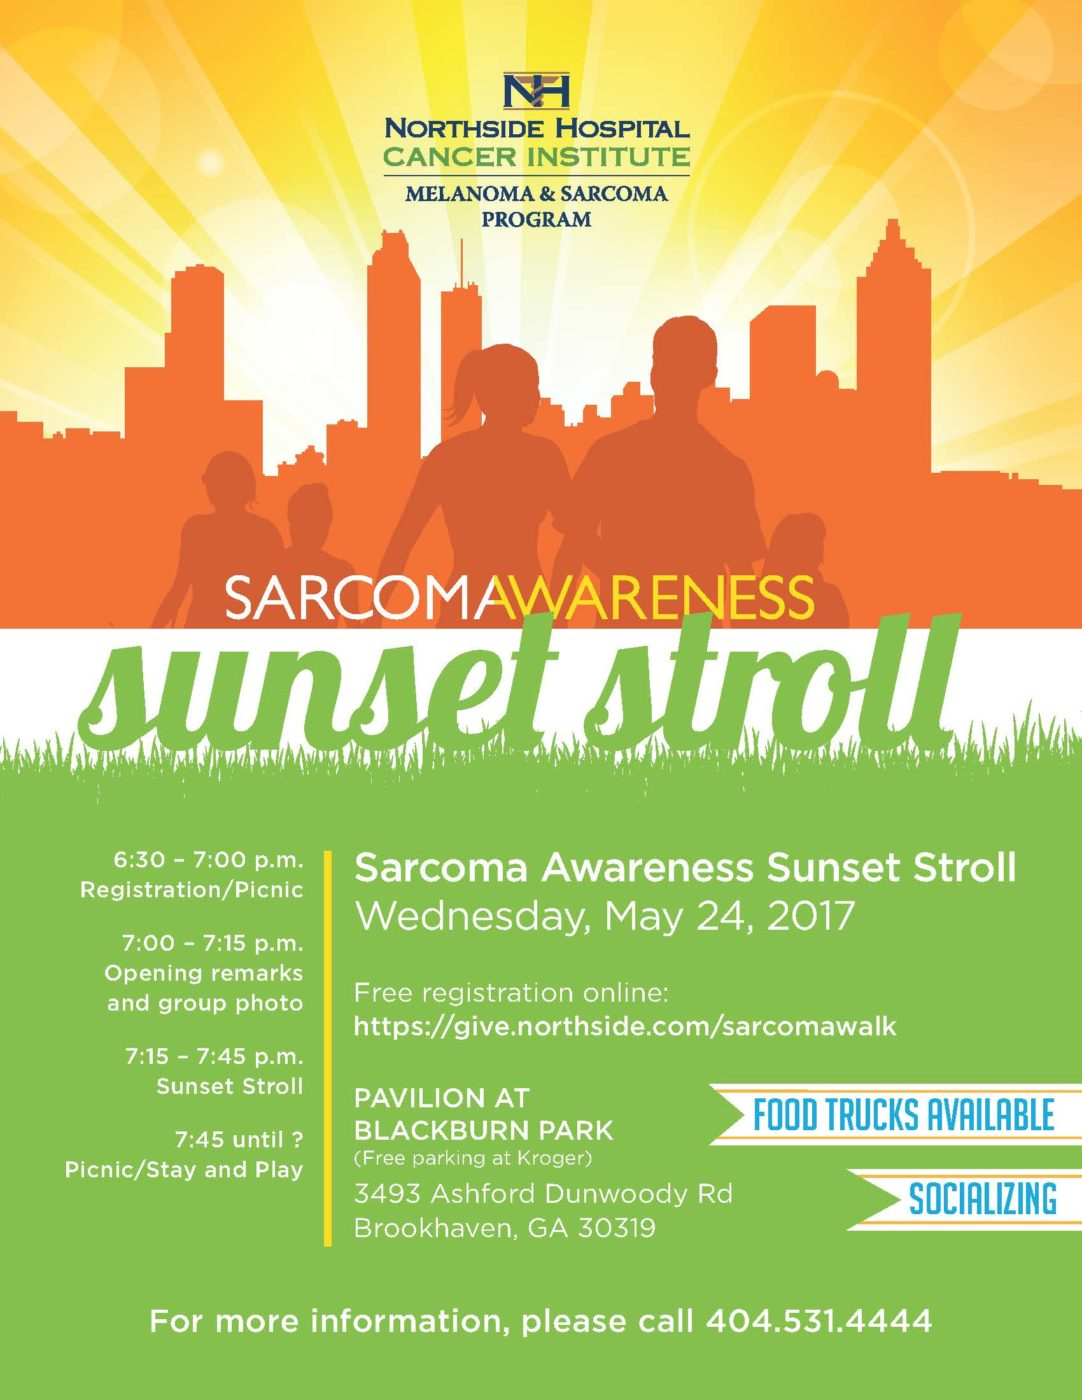 Sarcoma Awareness Sunset Stroll